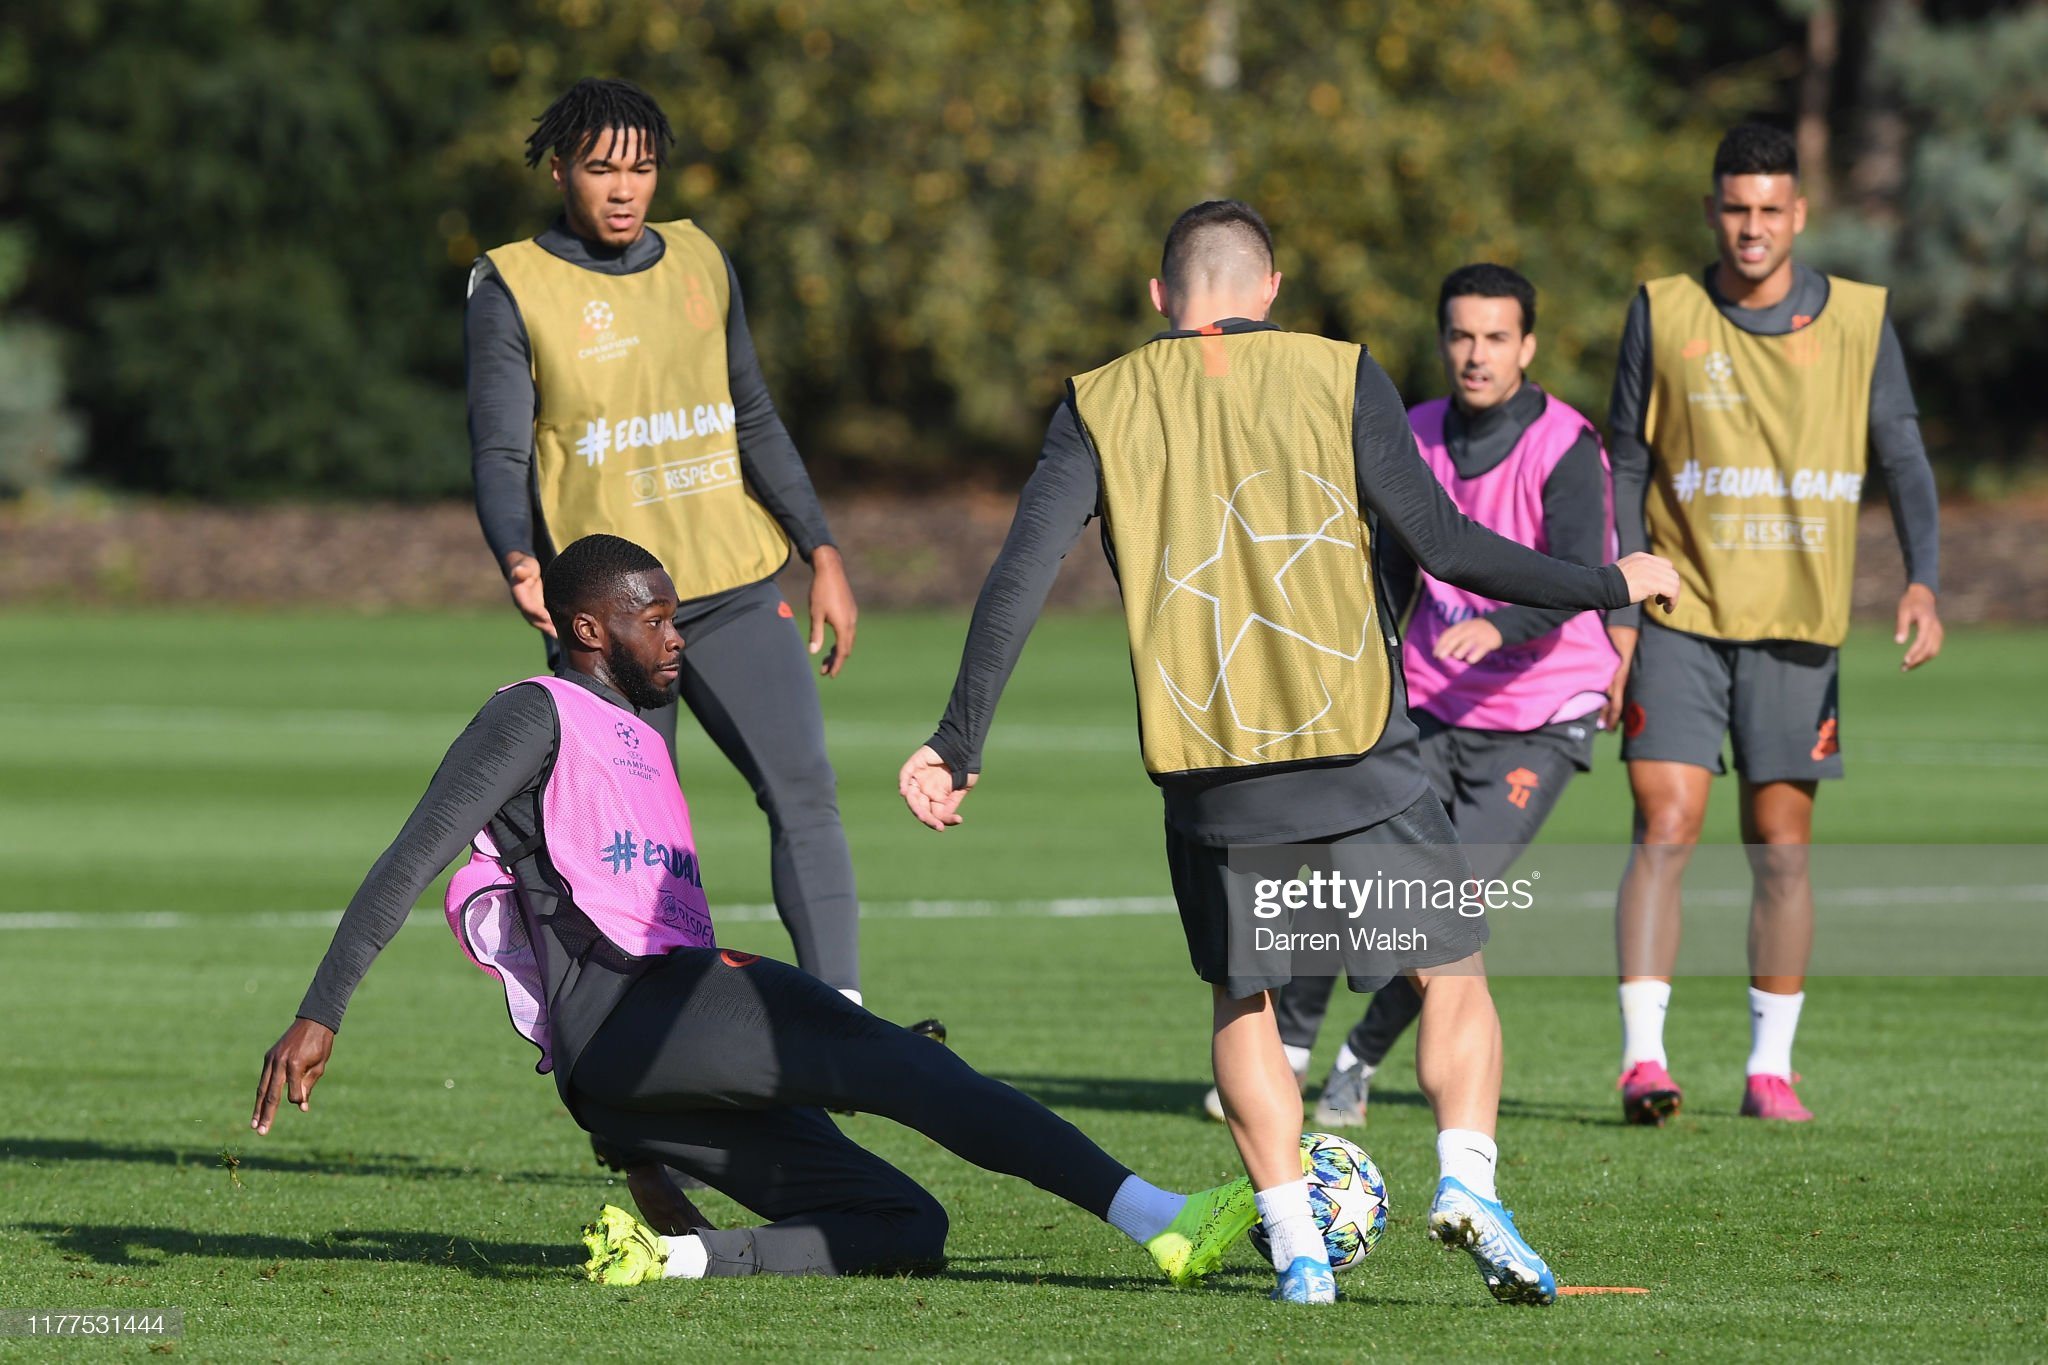 Chelsea Training Session : News Photo